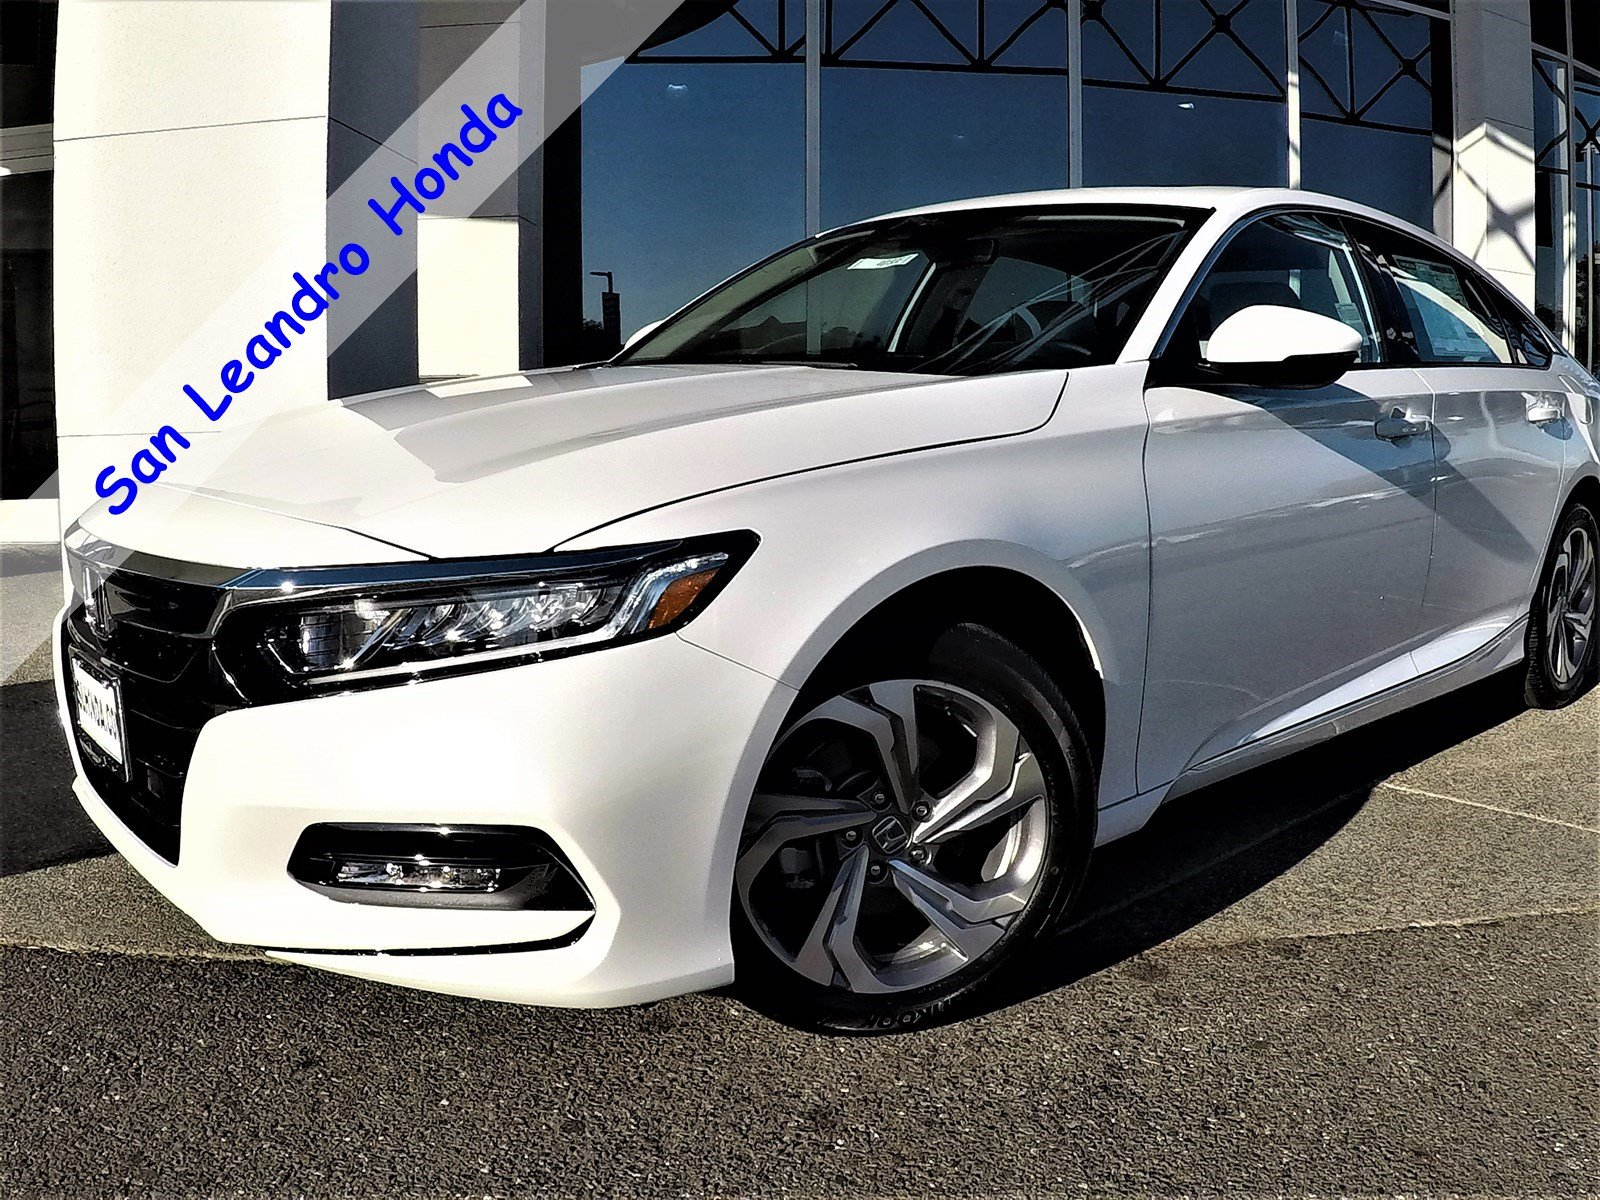 Perfect New 2018 Honda Accord EX L 1.5T Sedan For Sale/Lease San Leandro